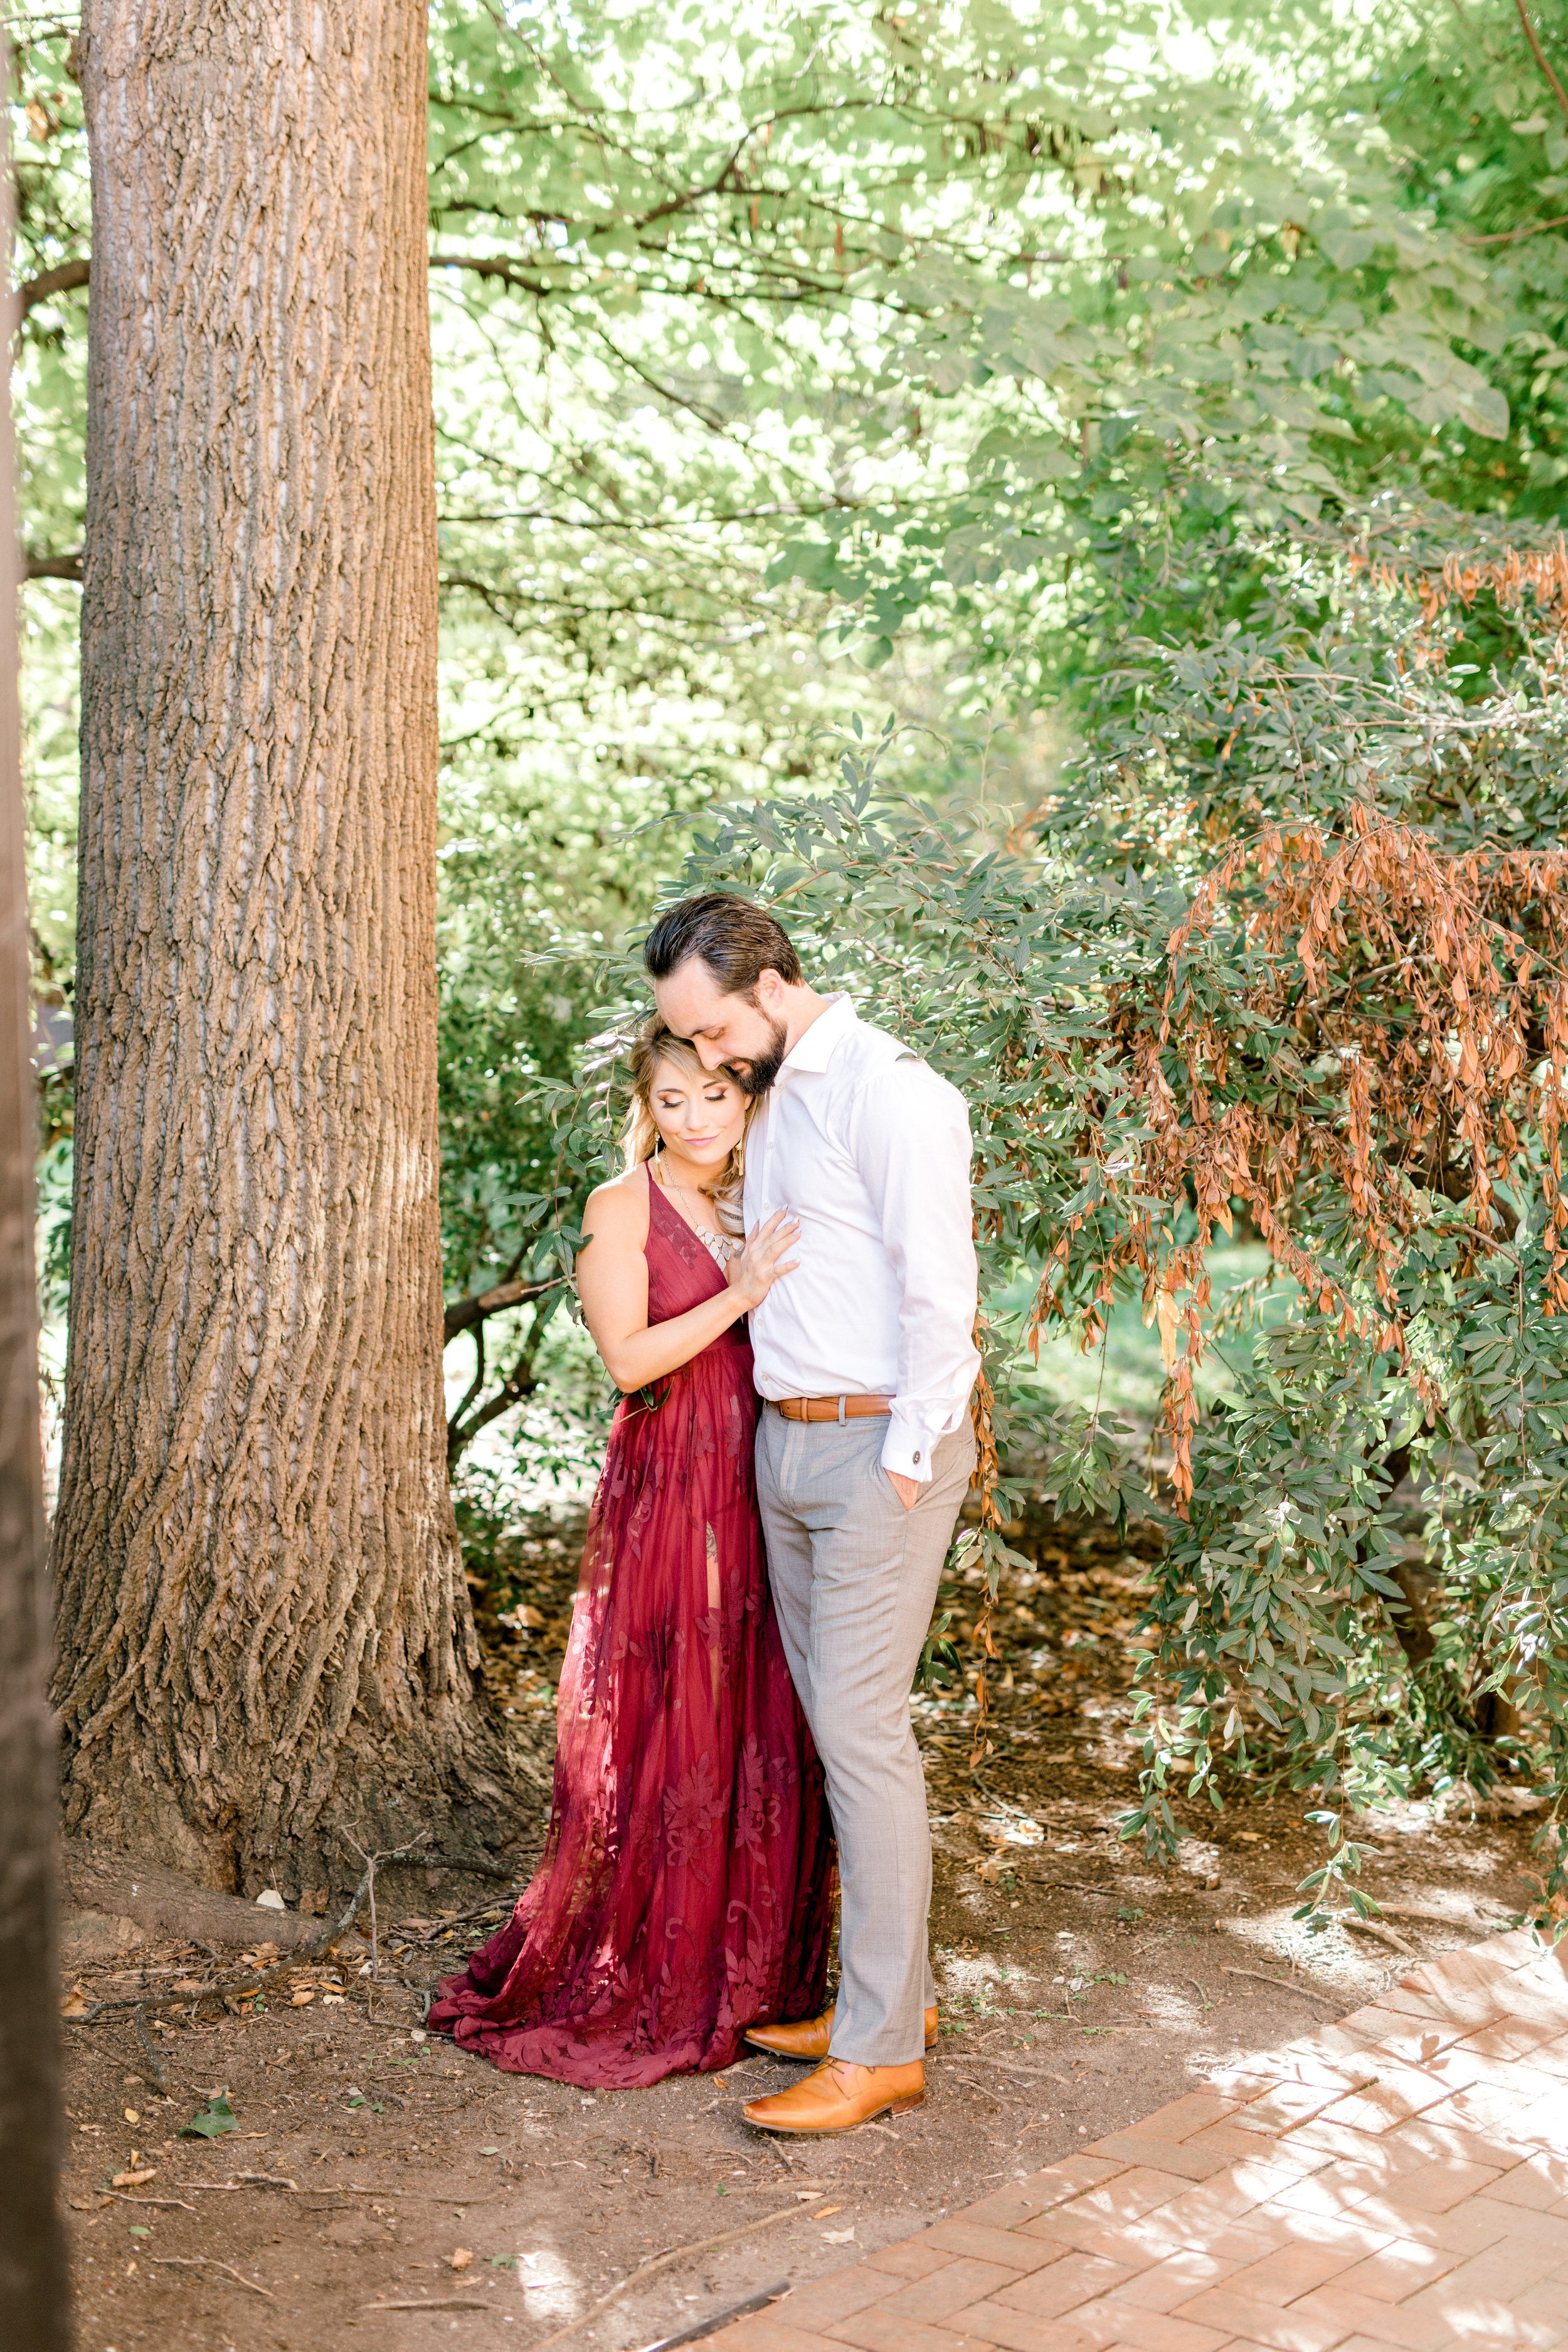 A romantic ending to this burgundy and white bright fall engagement session in Old City, Philadelphia.